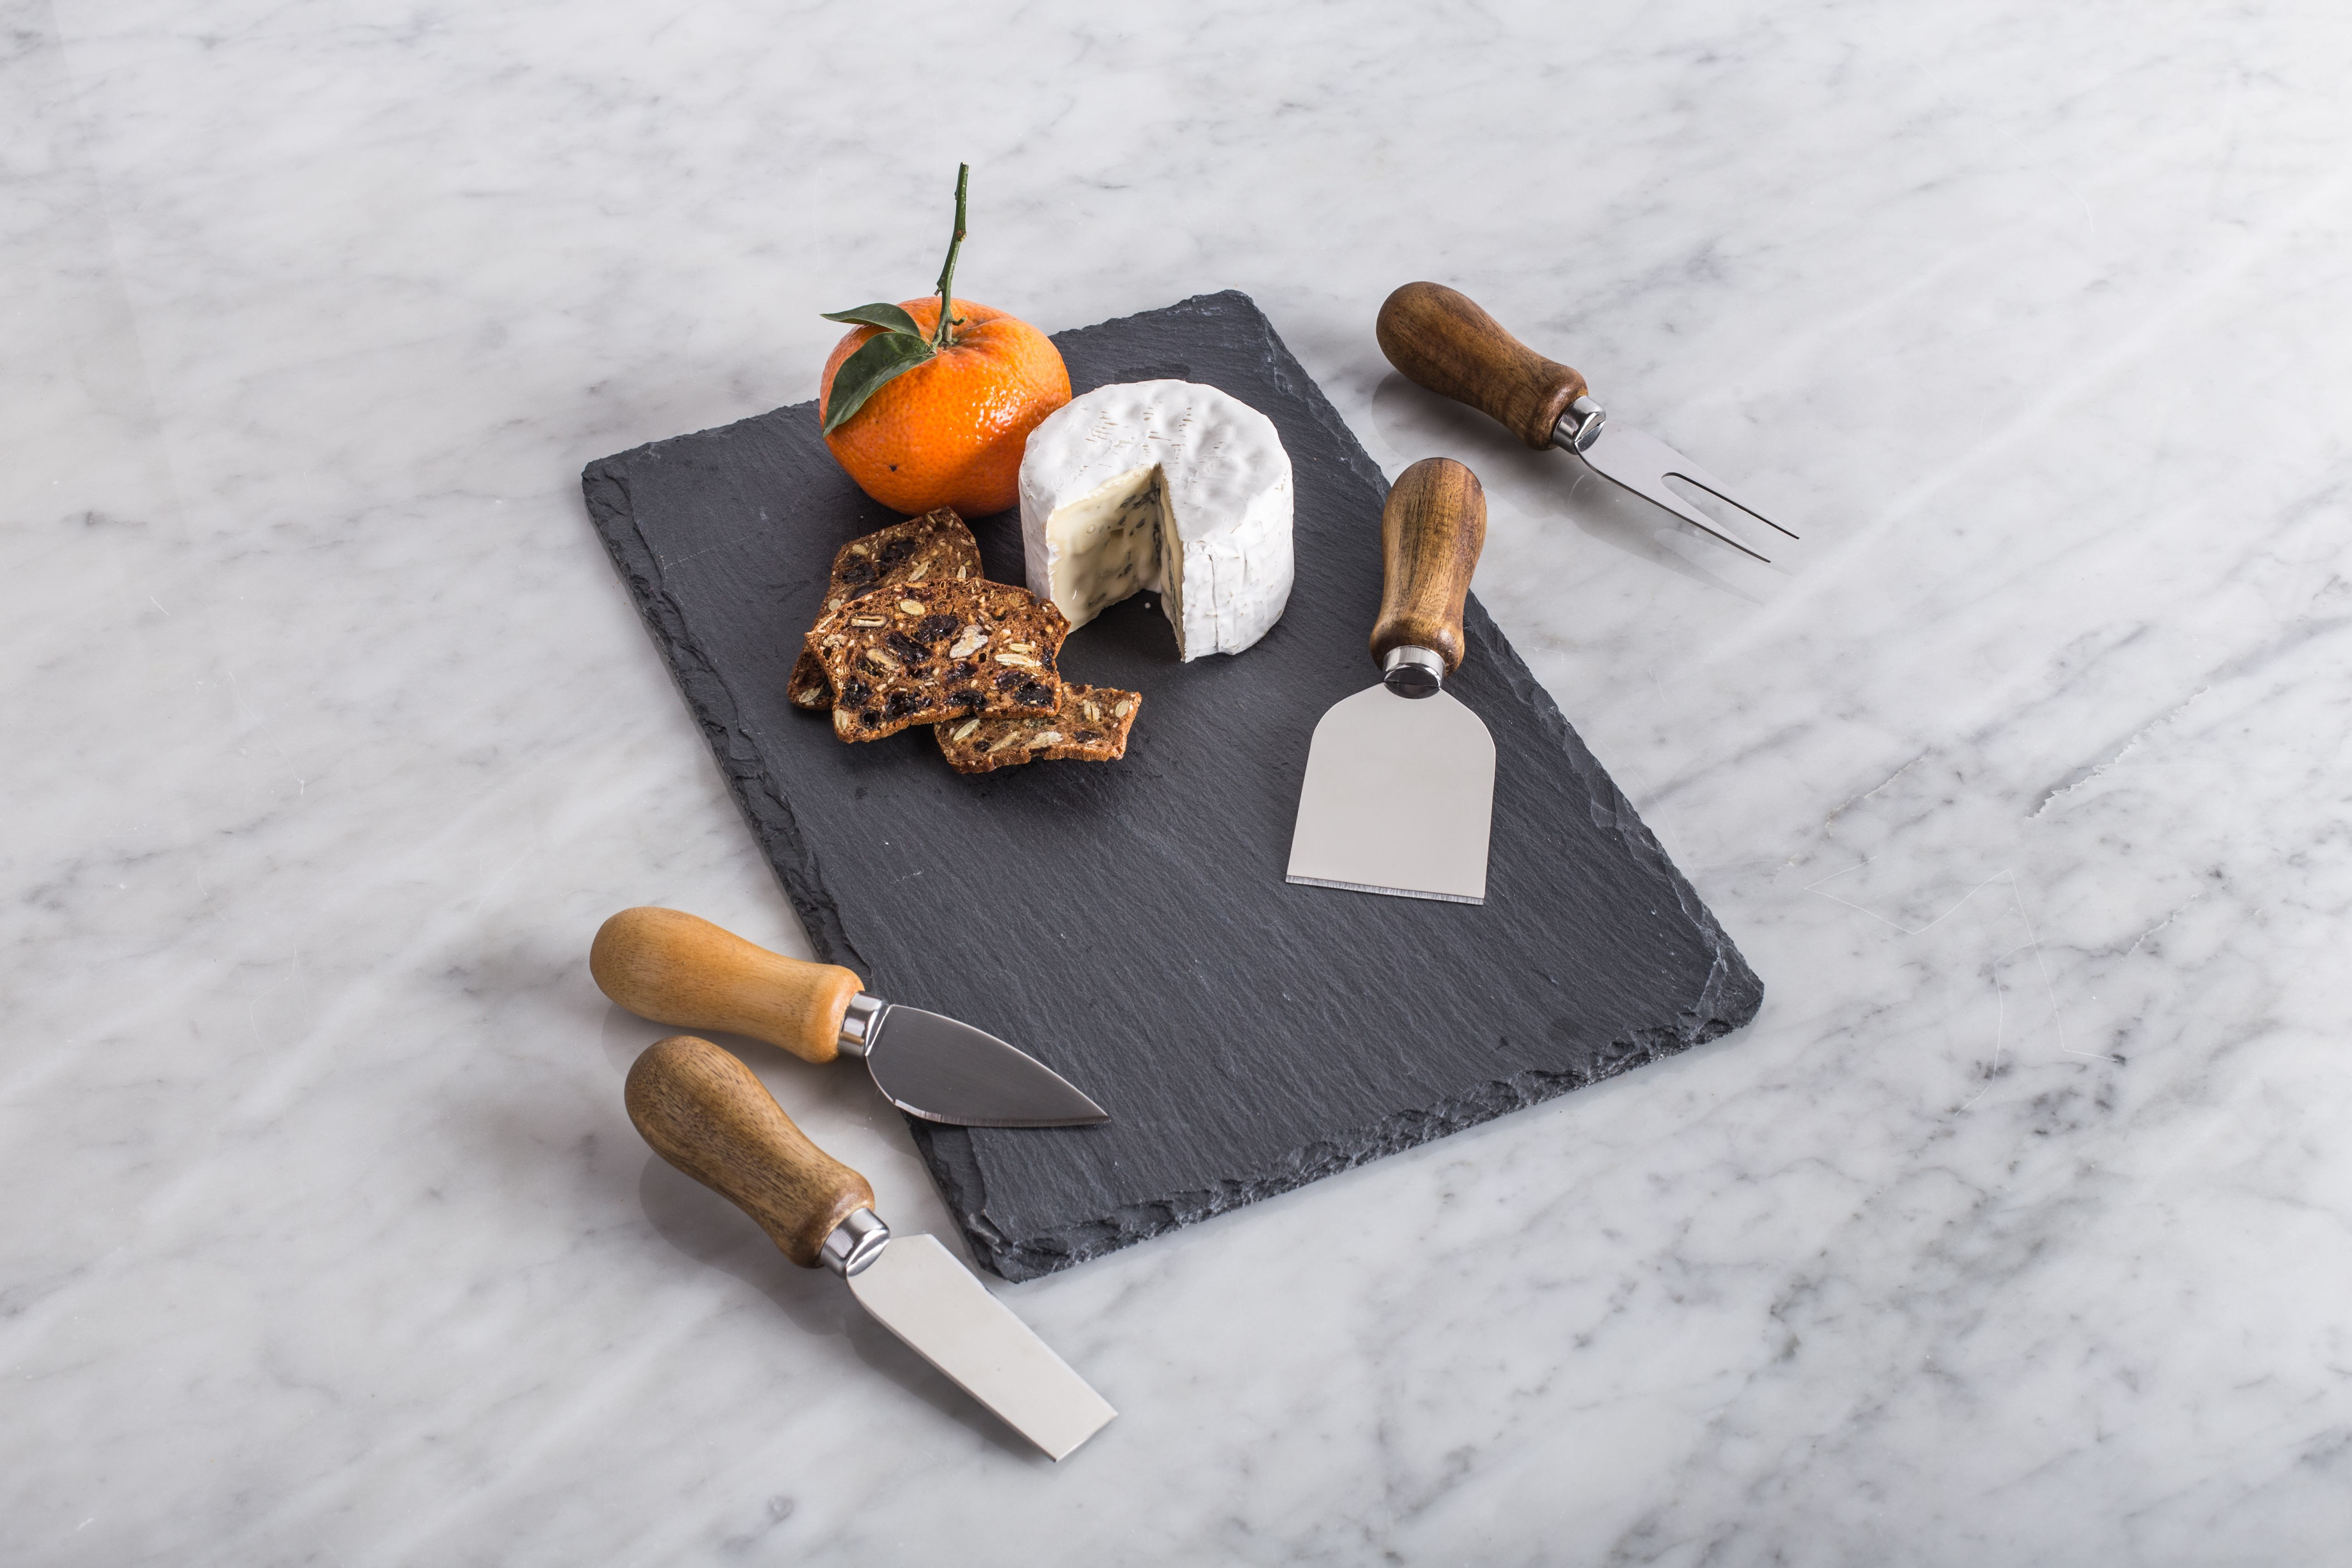 slate cheeseboard with 4 cheese tools with stainless steel blades and acacia wood handles and cheese and crackers